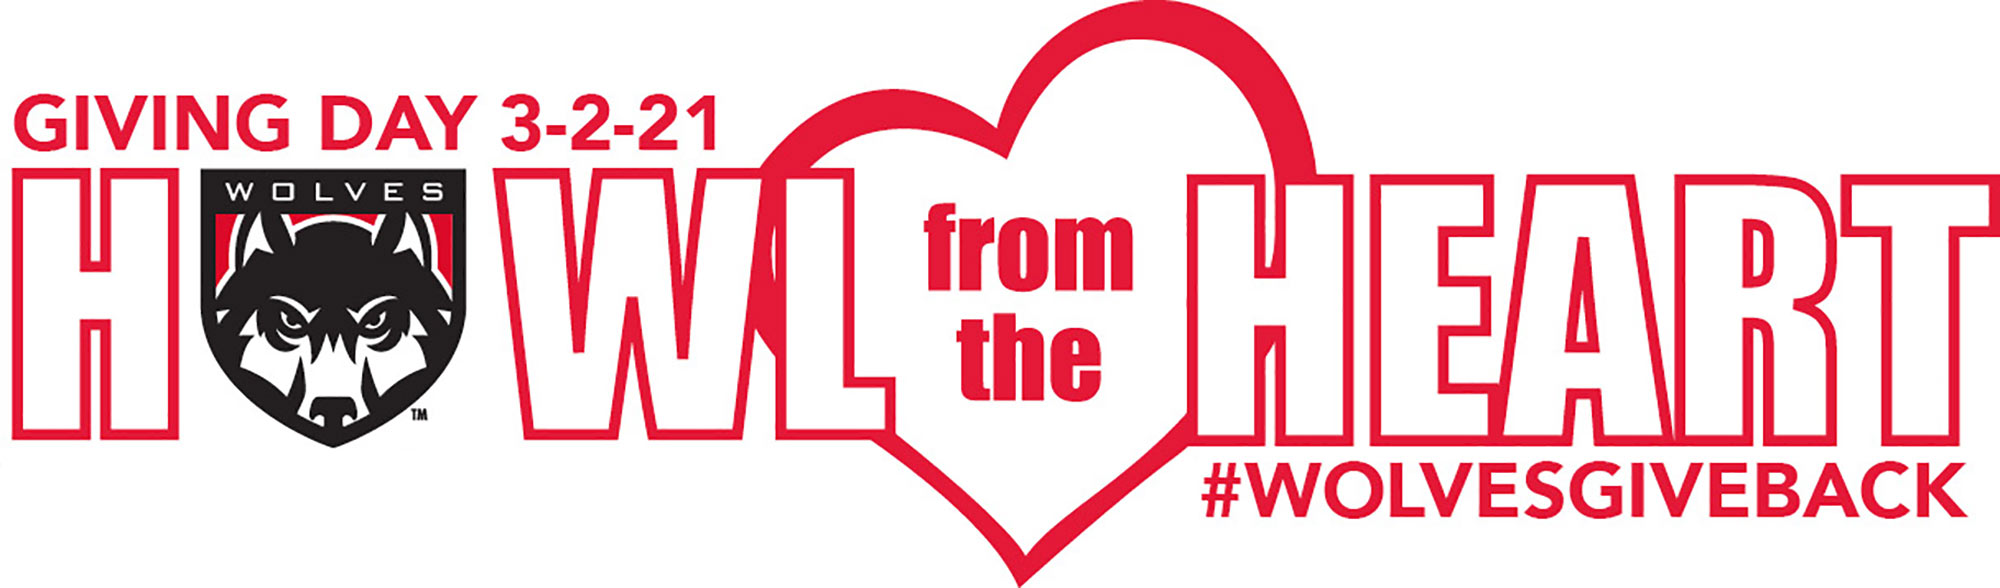 Giving Day 3-2-21 Howl from the heart #wolvesgiveback